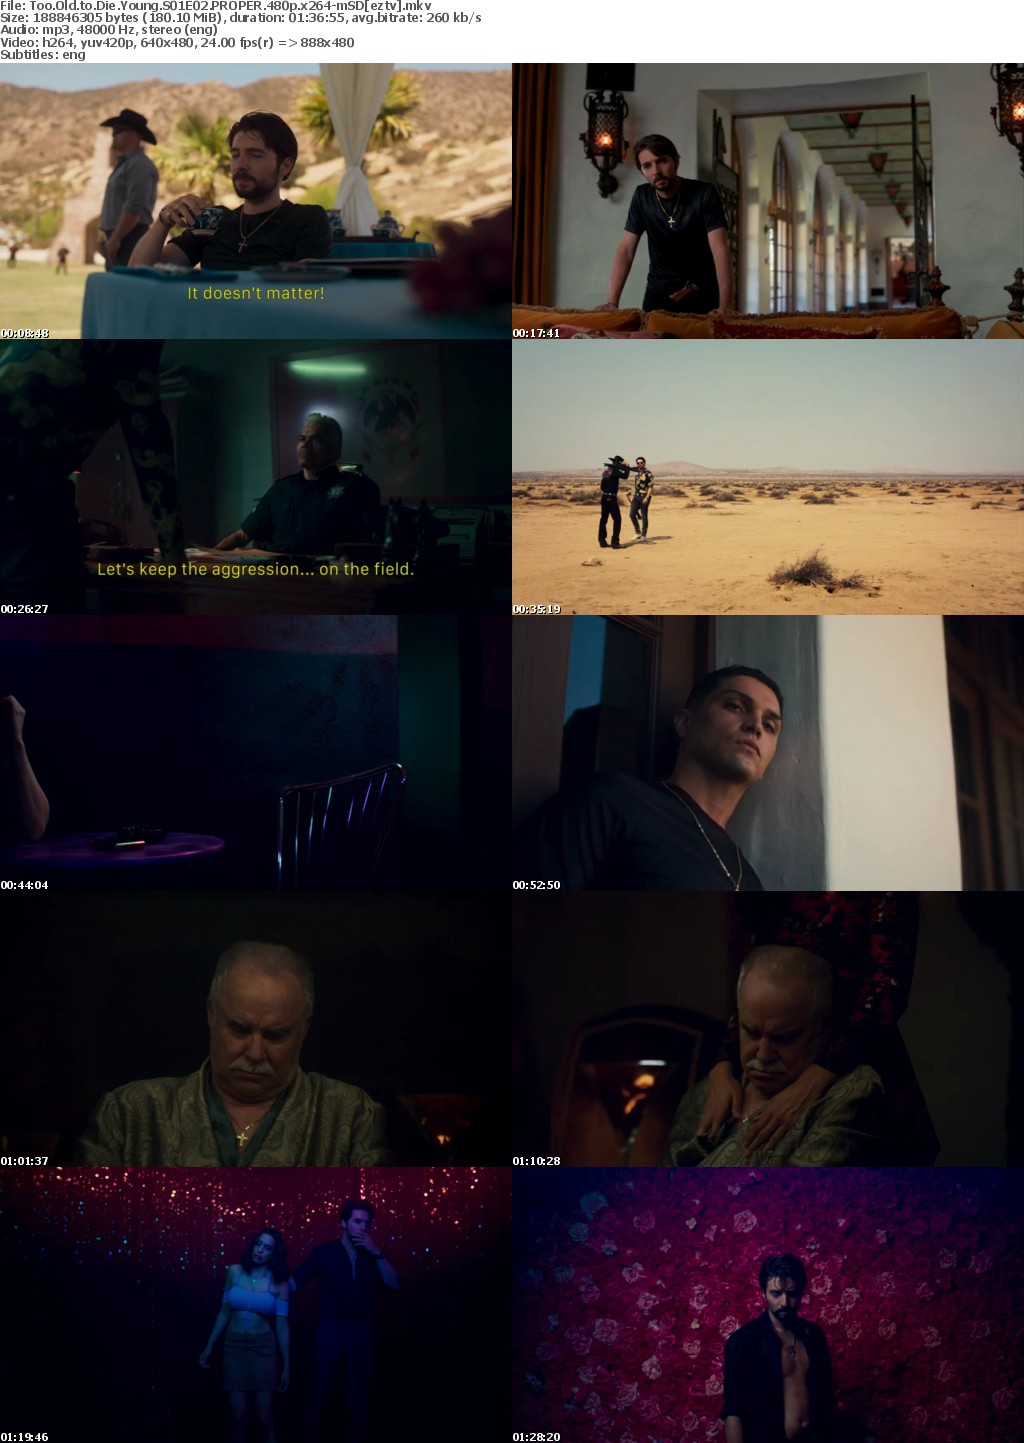 Too Old to Die Young S01E02 PROPER 480p x264-mSD